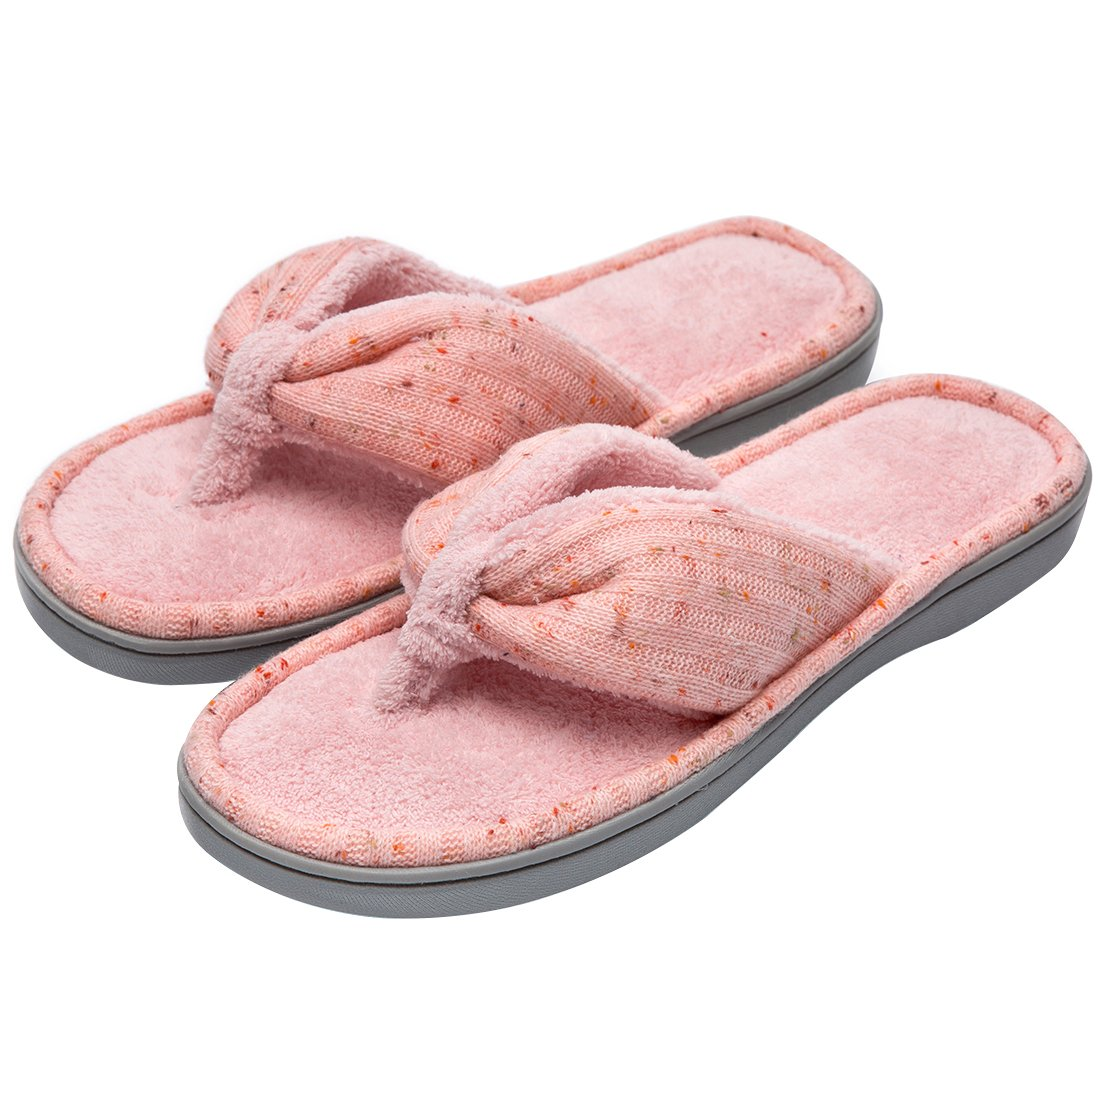 Women's Soft & Comfy Knitted Plush Fleece Lining Memory Foam Spa Thong Flip Flops House Slippers (Small/5-6 B(M) US, Pink)